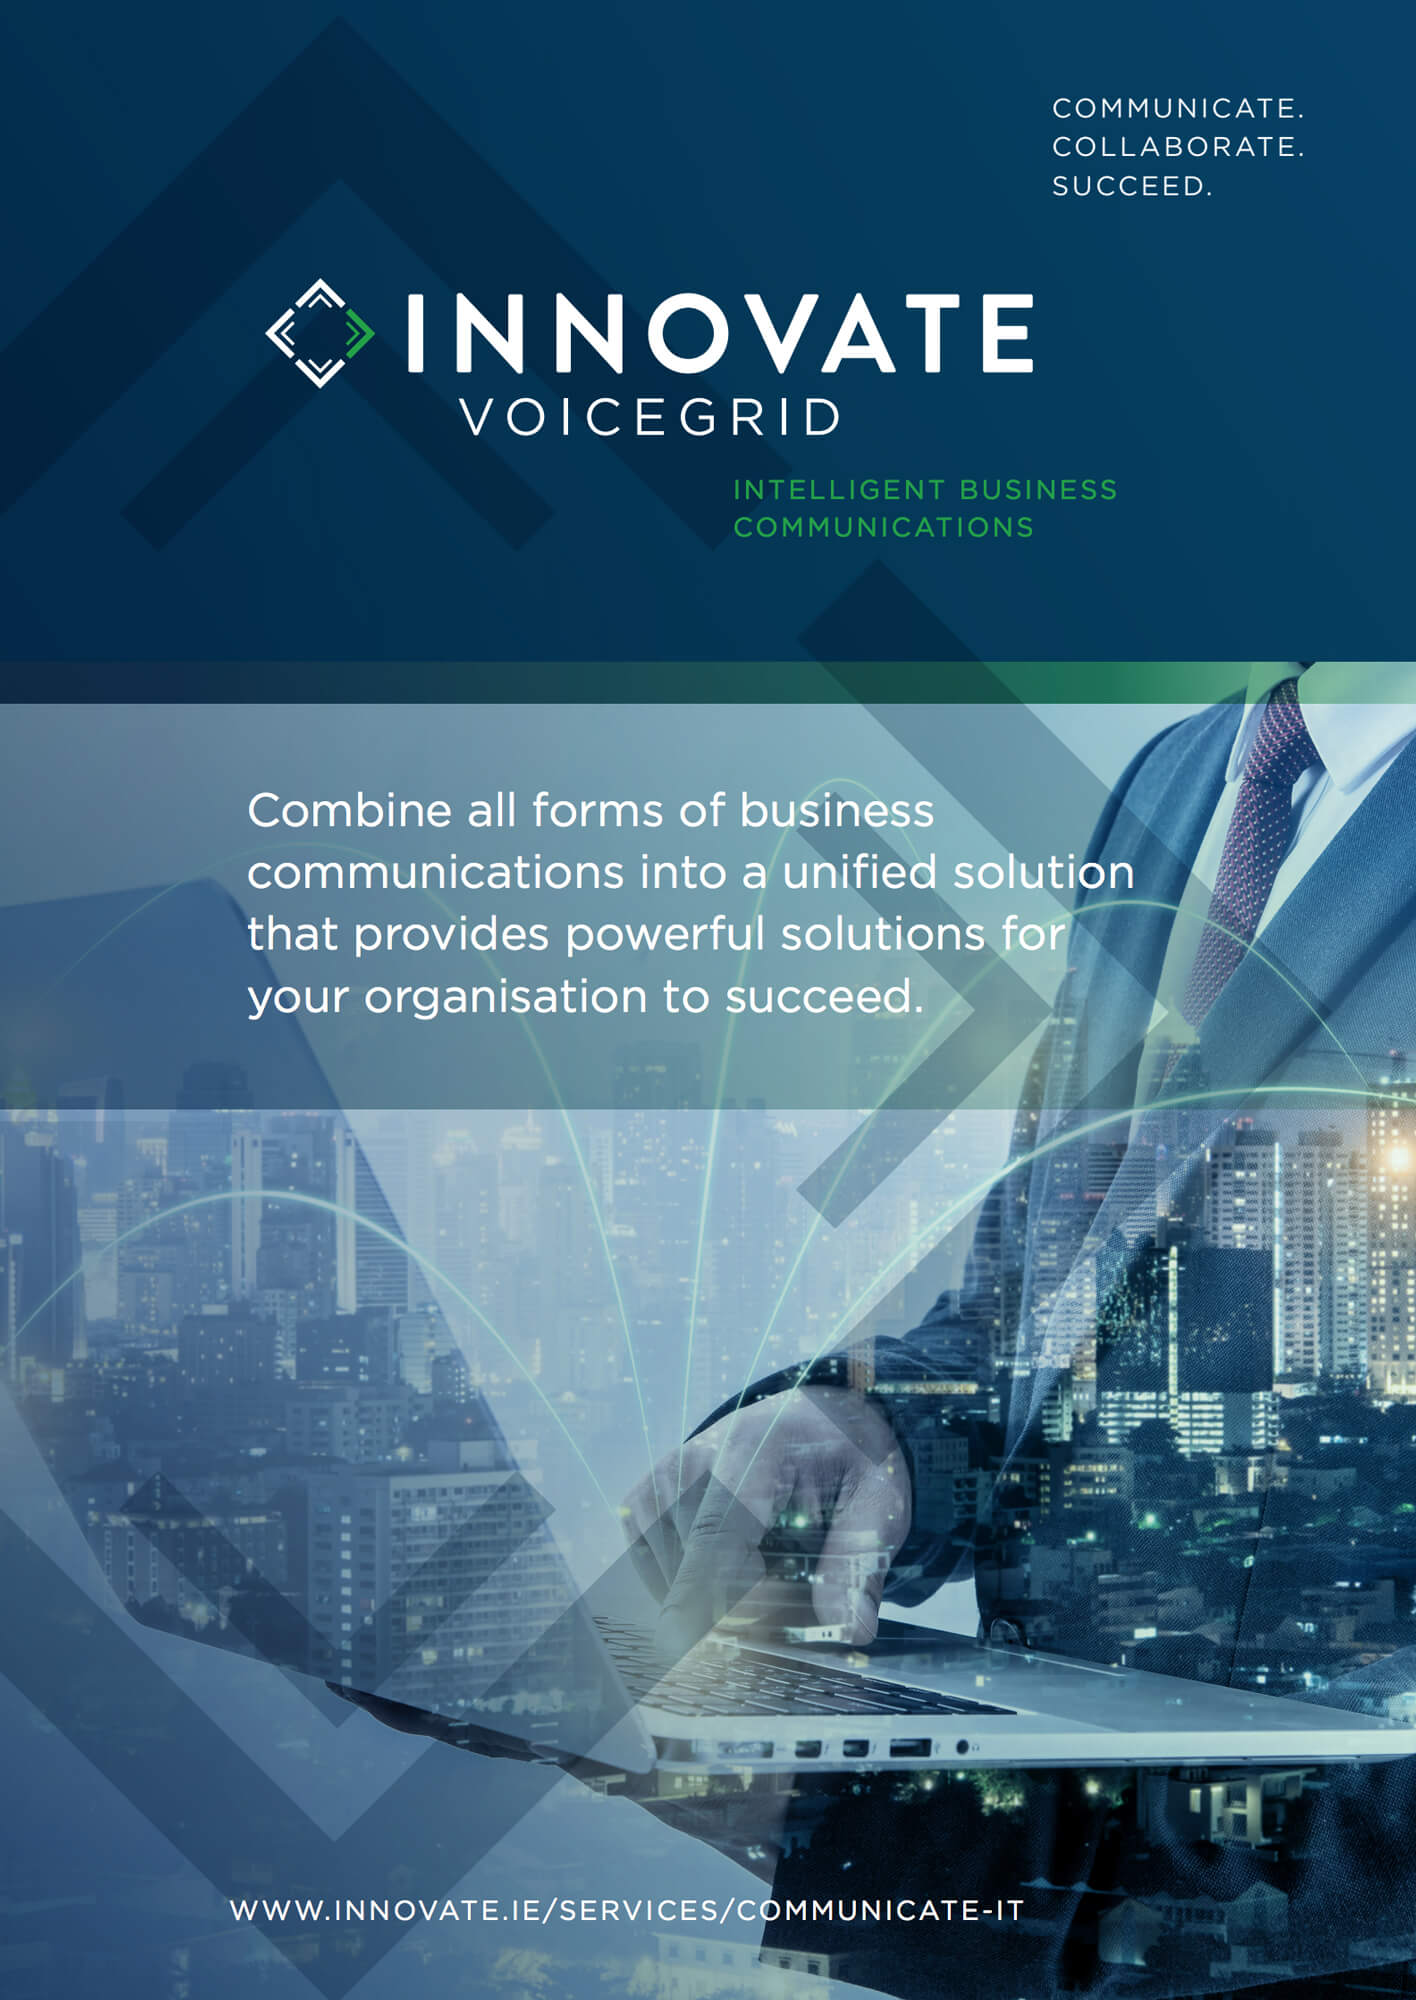 INNOVATE-Intelligent-Business-Communications-Ebook.jpg